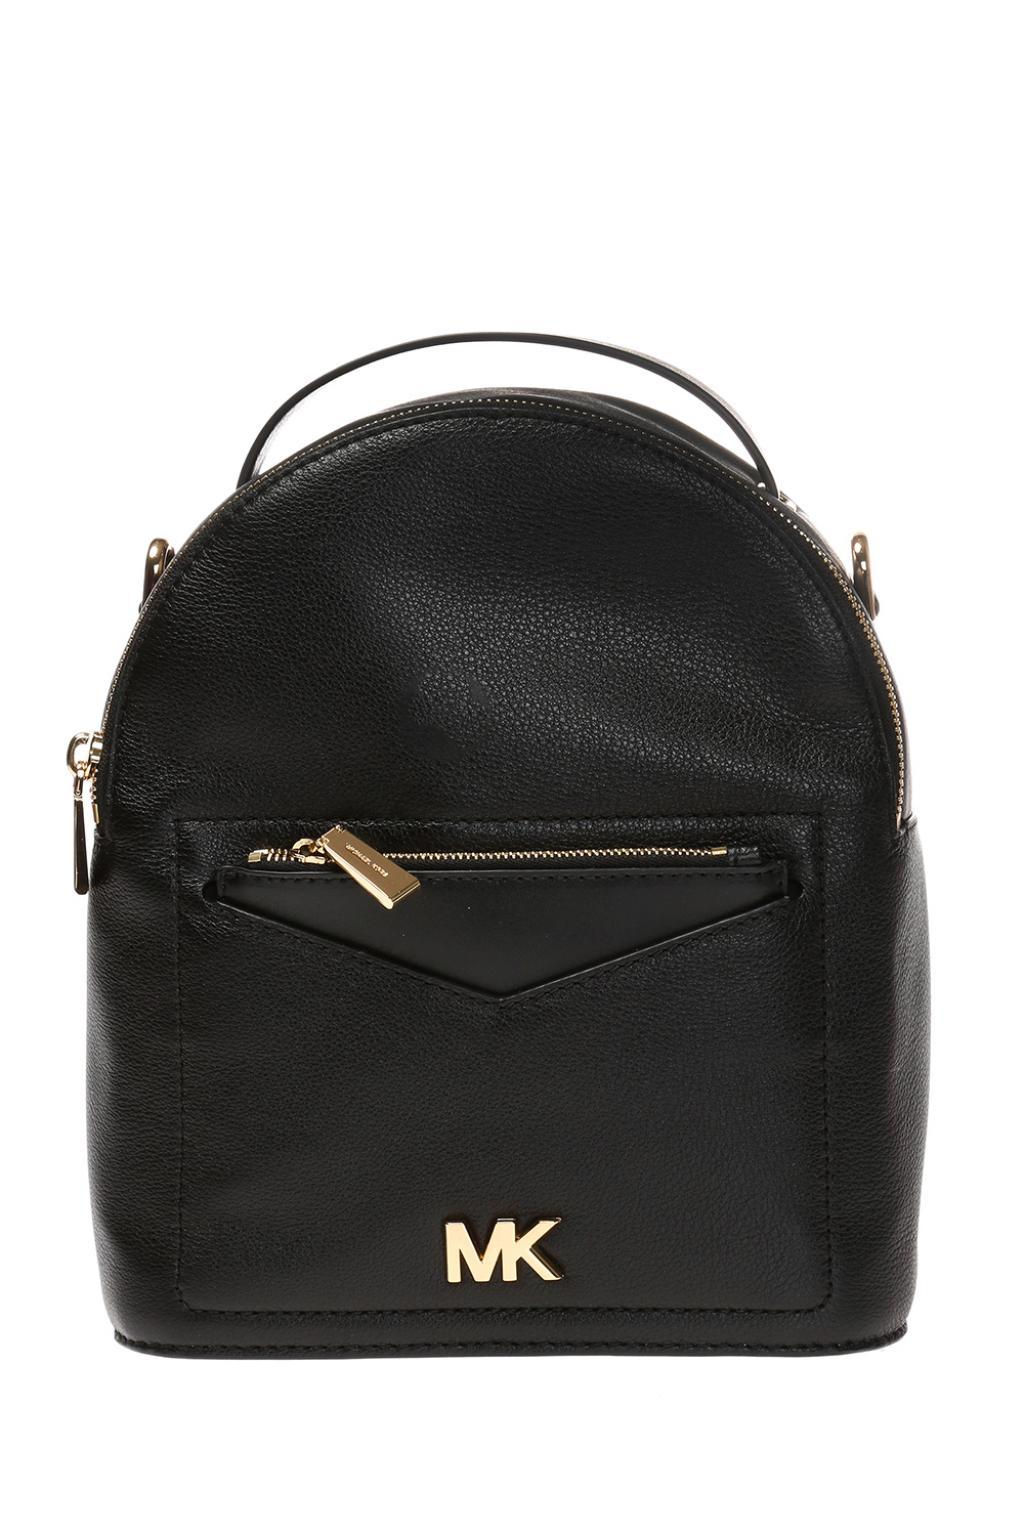 77903ad15416 Lyst - Michael Kors 'jessa' Backpack in Black